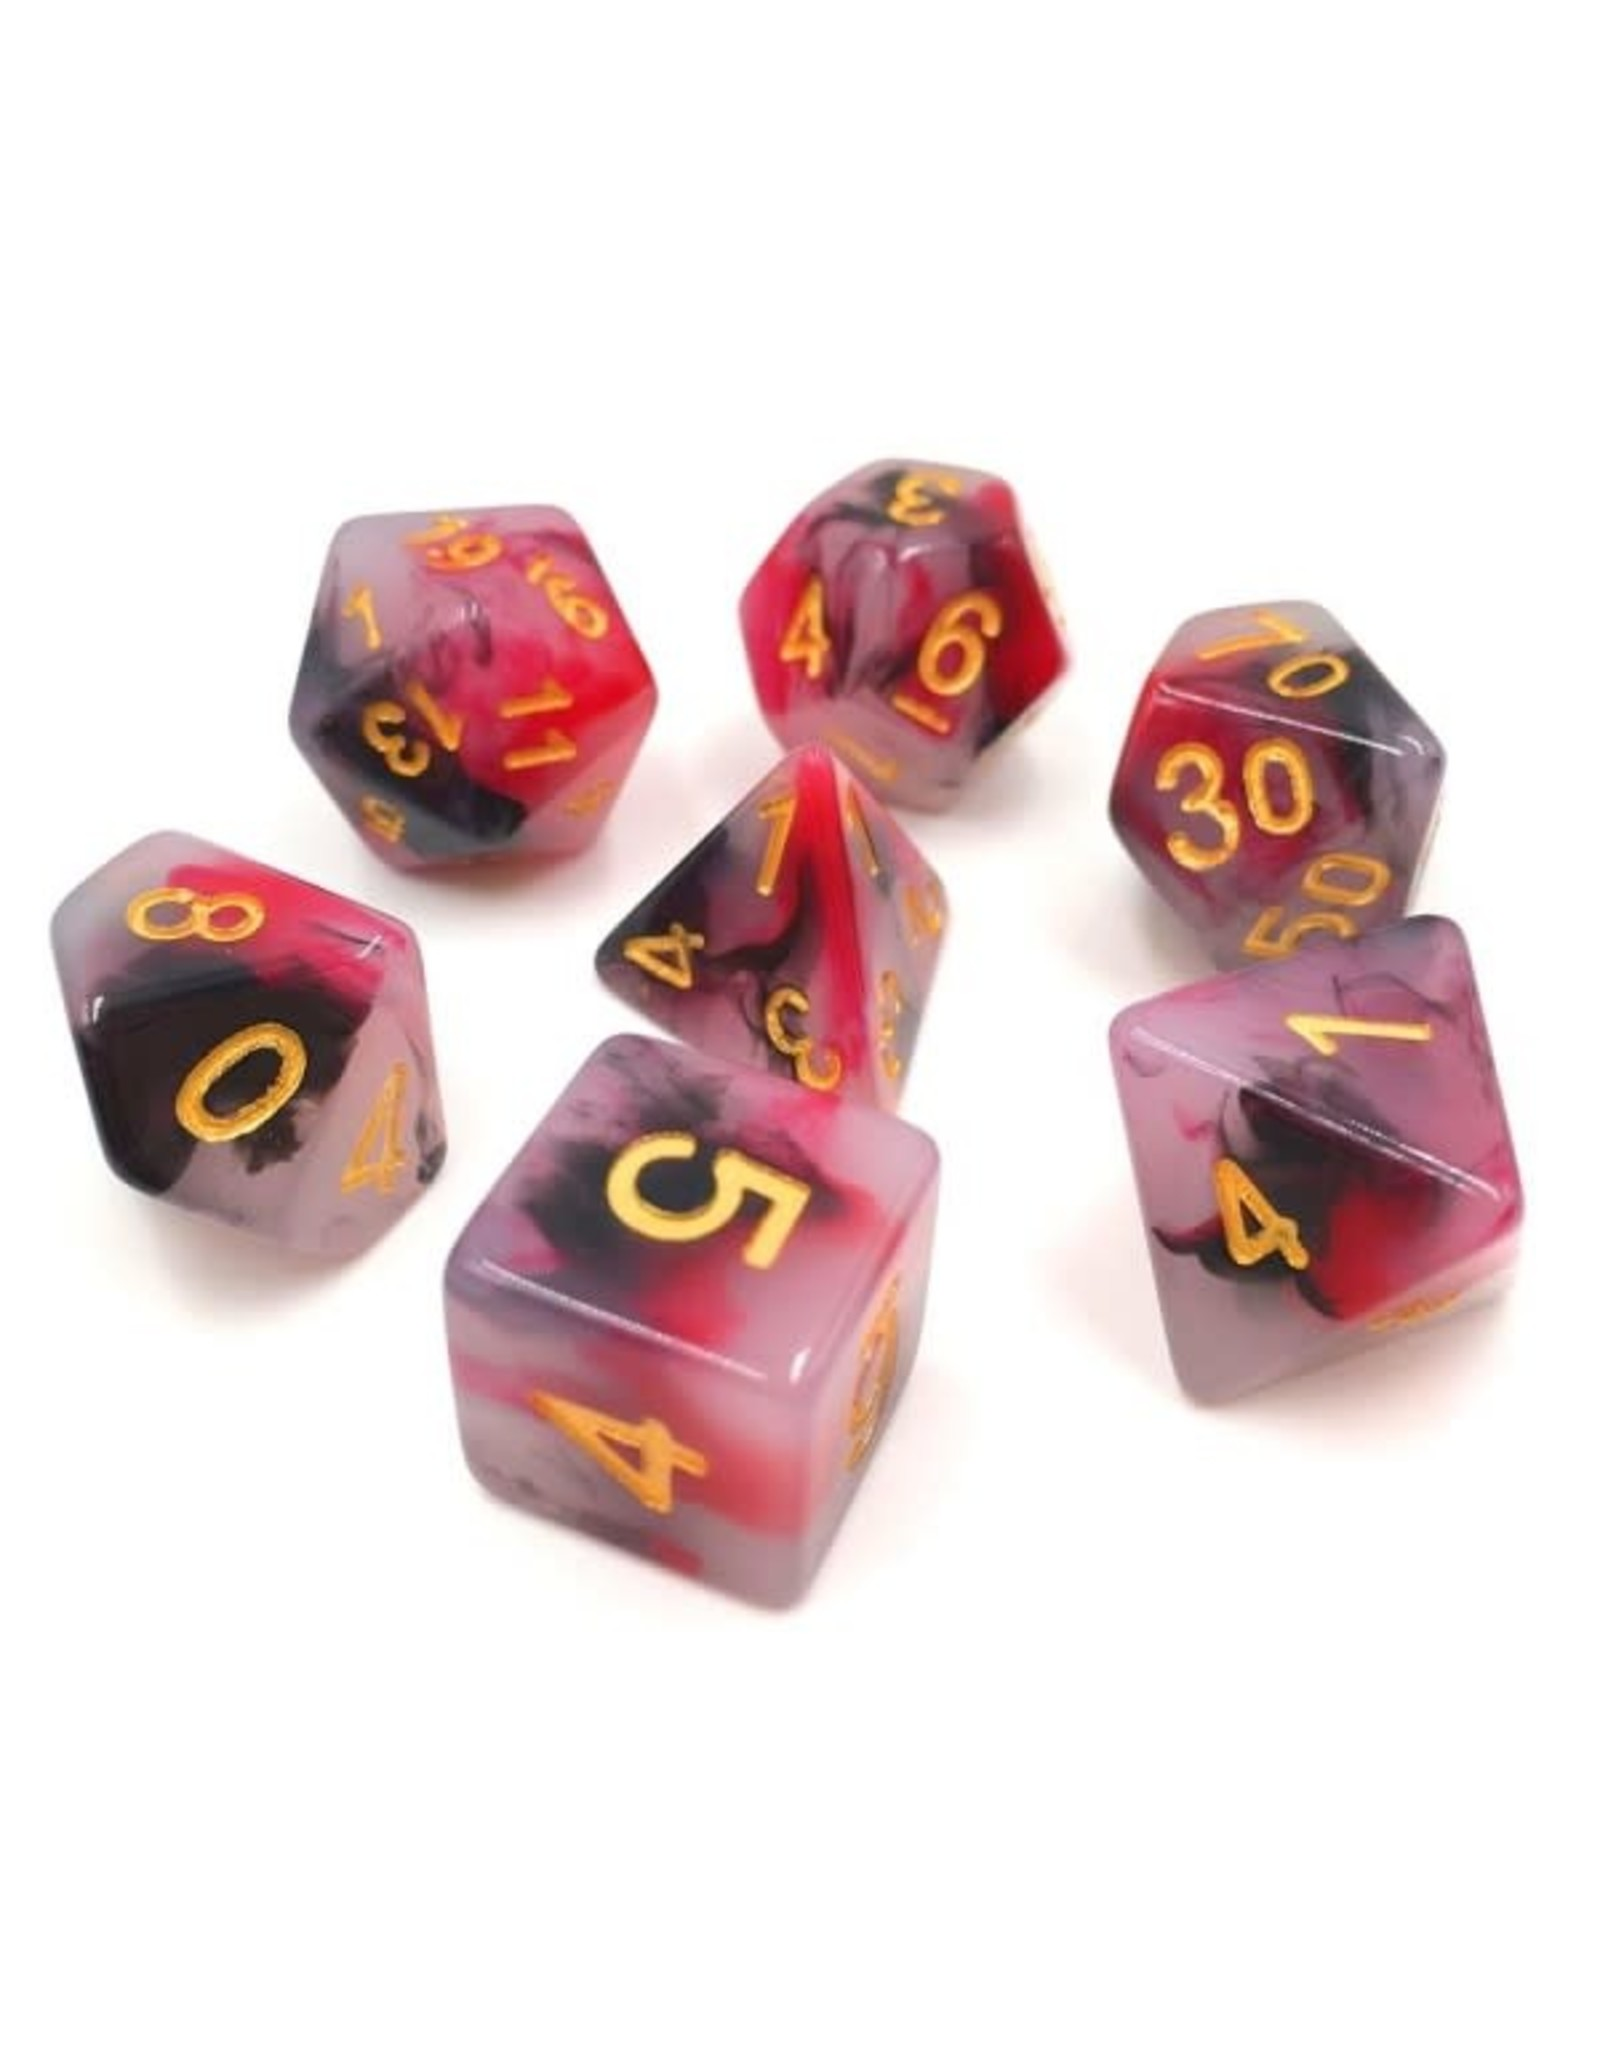 HD Dice 7-Set Jade Black-Red with Gold Numbers